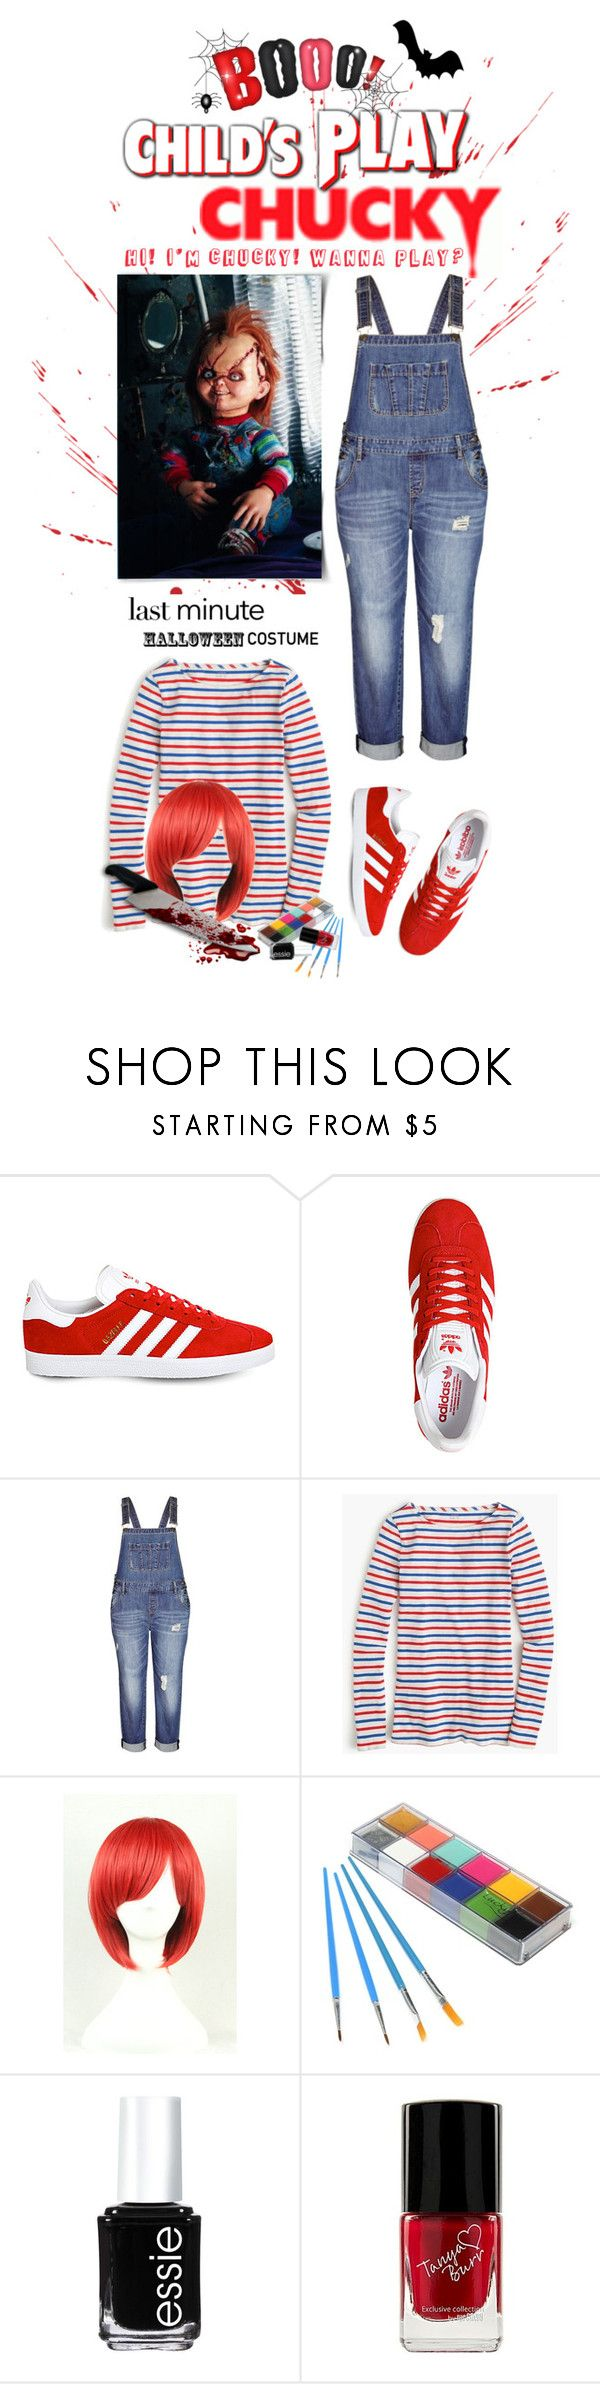 """Last-Minute Halloween Costume.. Chucky!!!!"" by shortyluv718 ❤ liked on Polyvore featuring adidas, City Chic, J.Crew, Essie and halloweencostume"